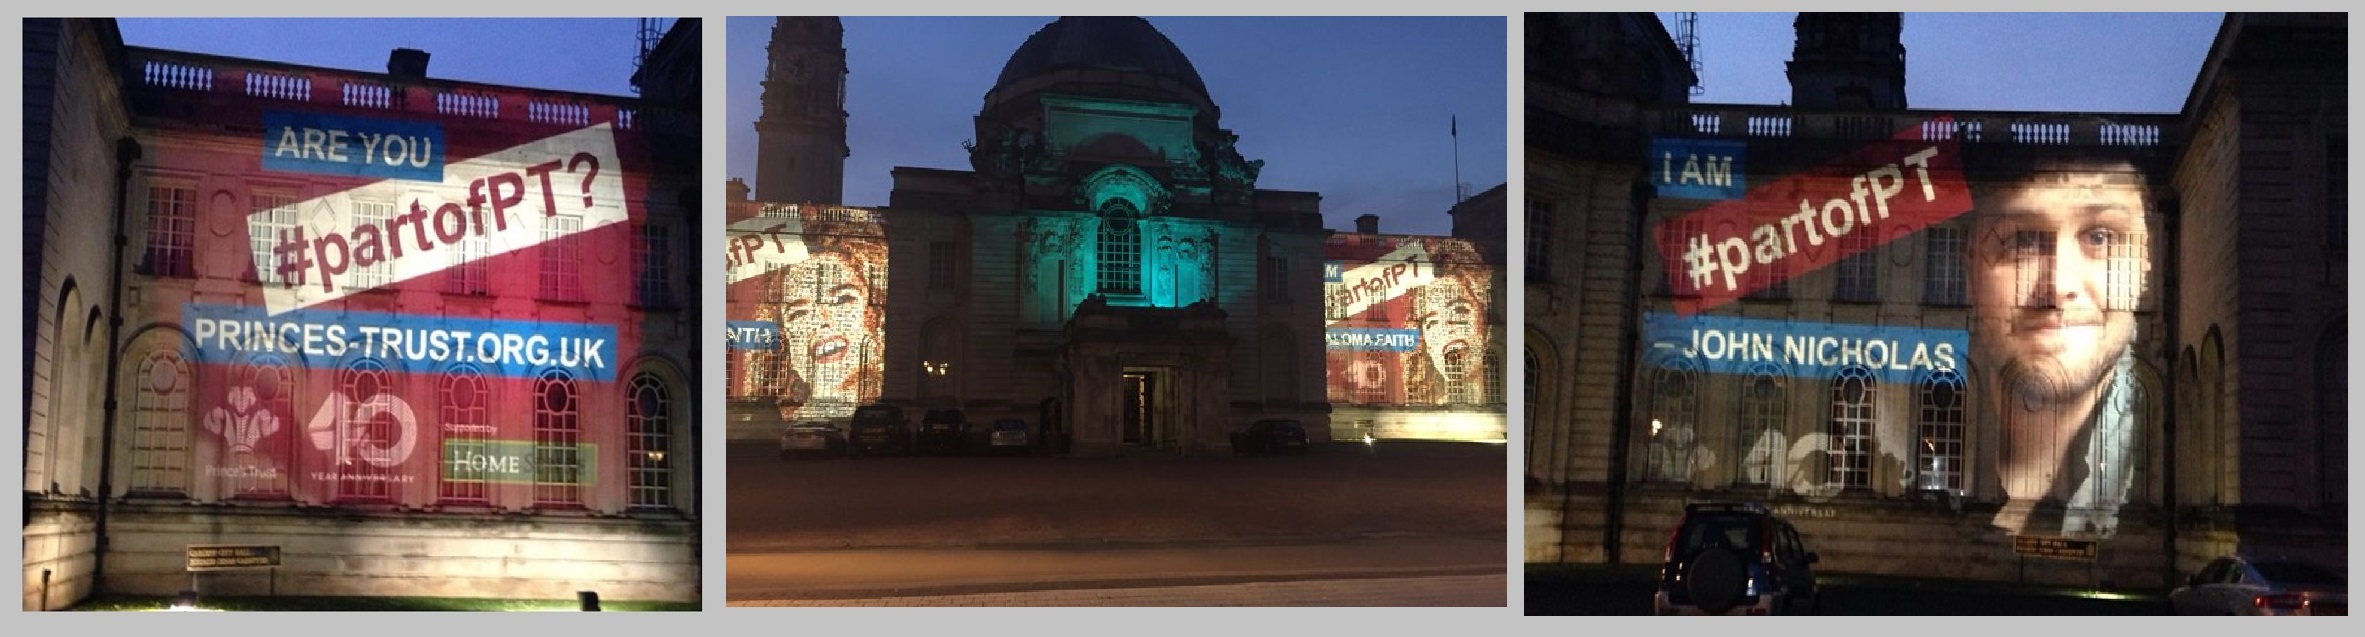 Prince's Trust projections Cardiff City Hall